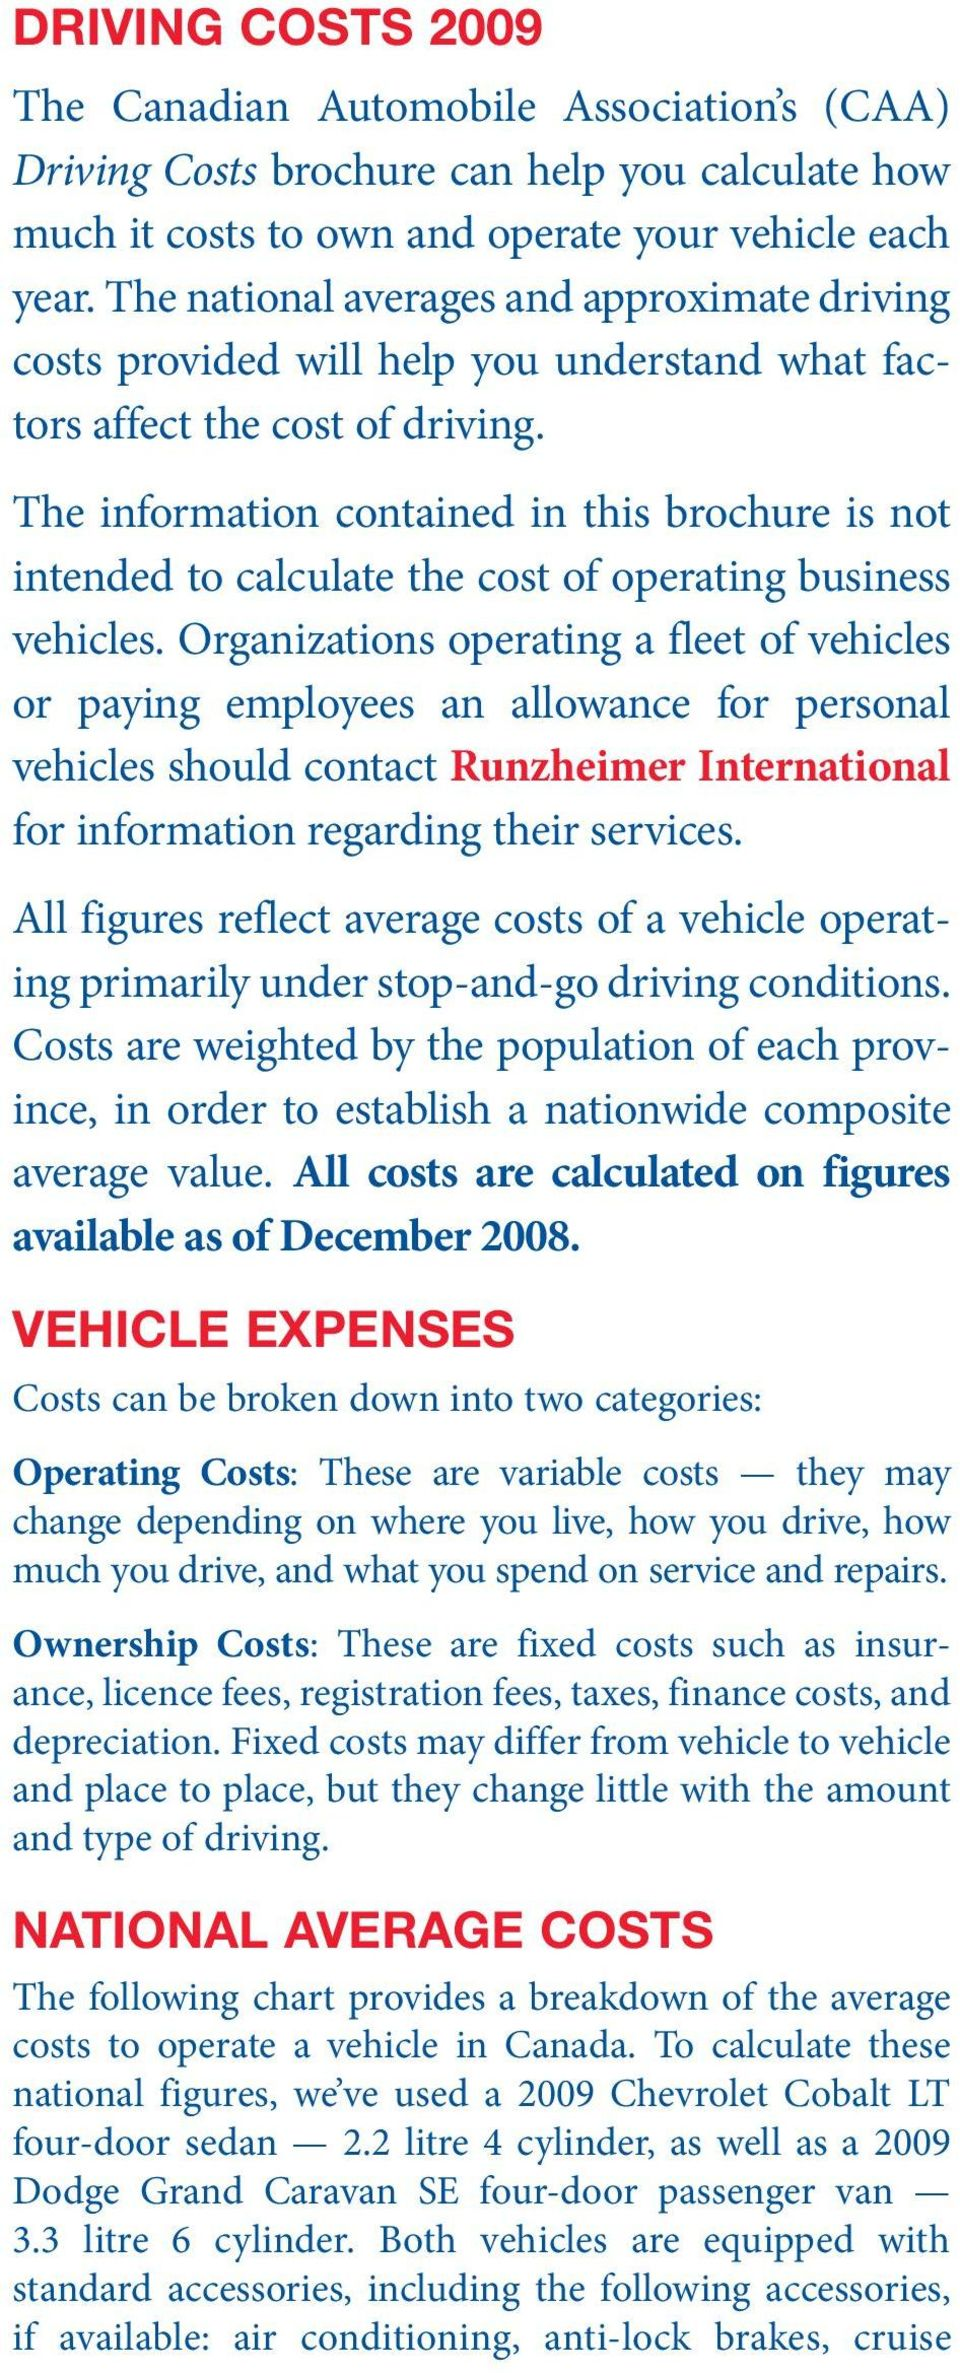 The information contained in this brochure is not intended to calculate the cost of operating business vehicles.